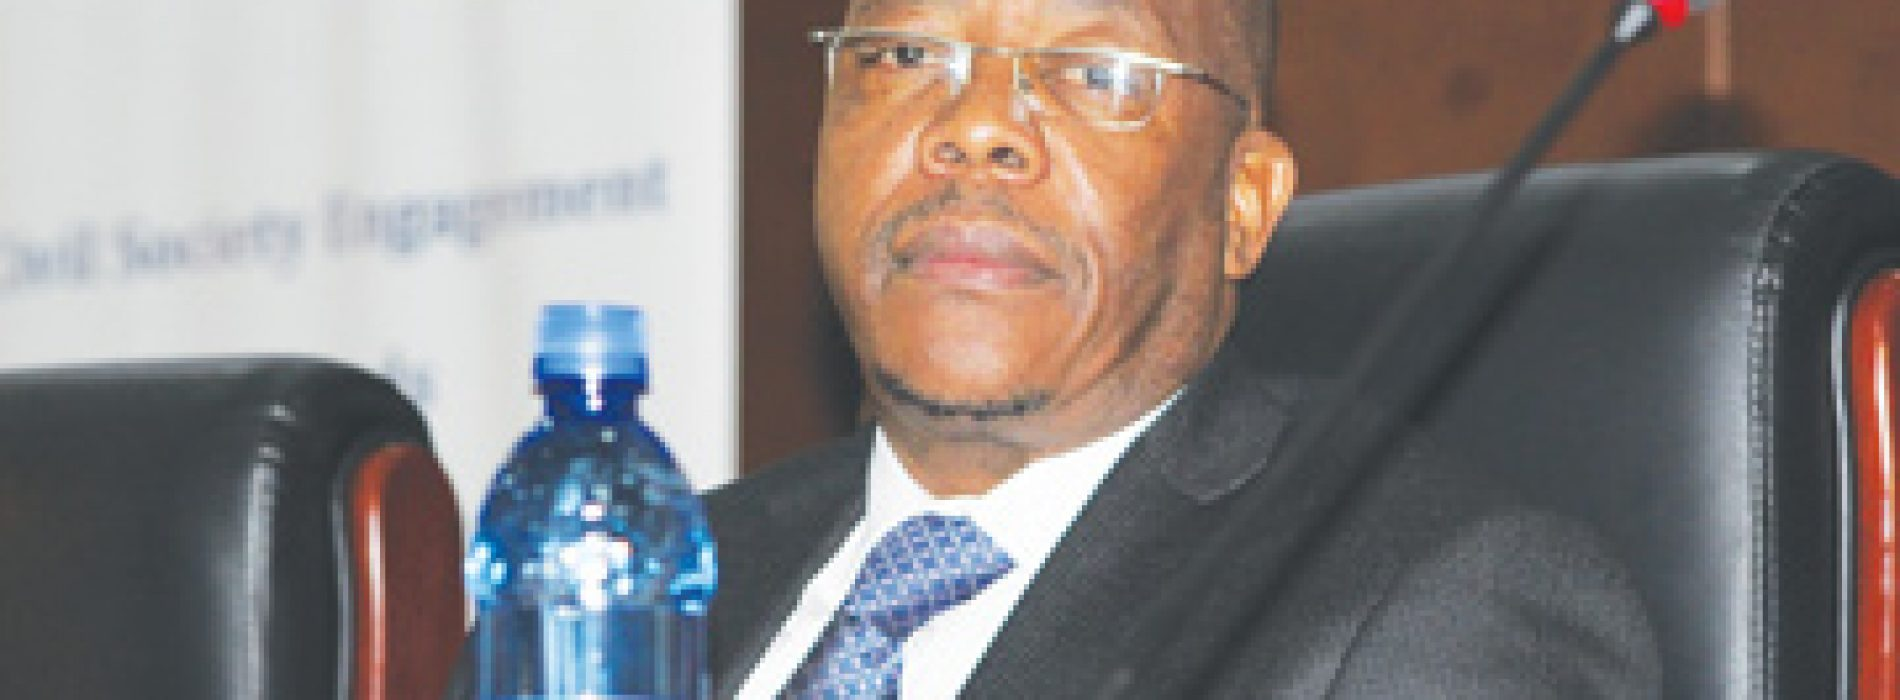 Makgothi rejects nepotism charge